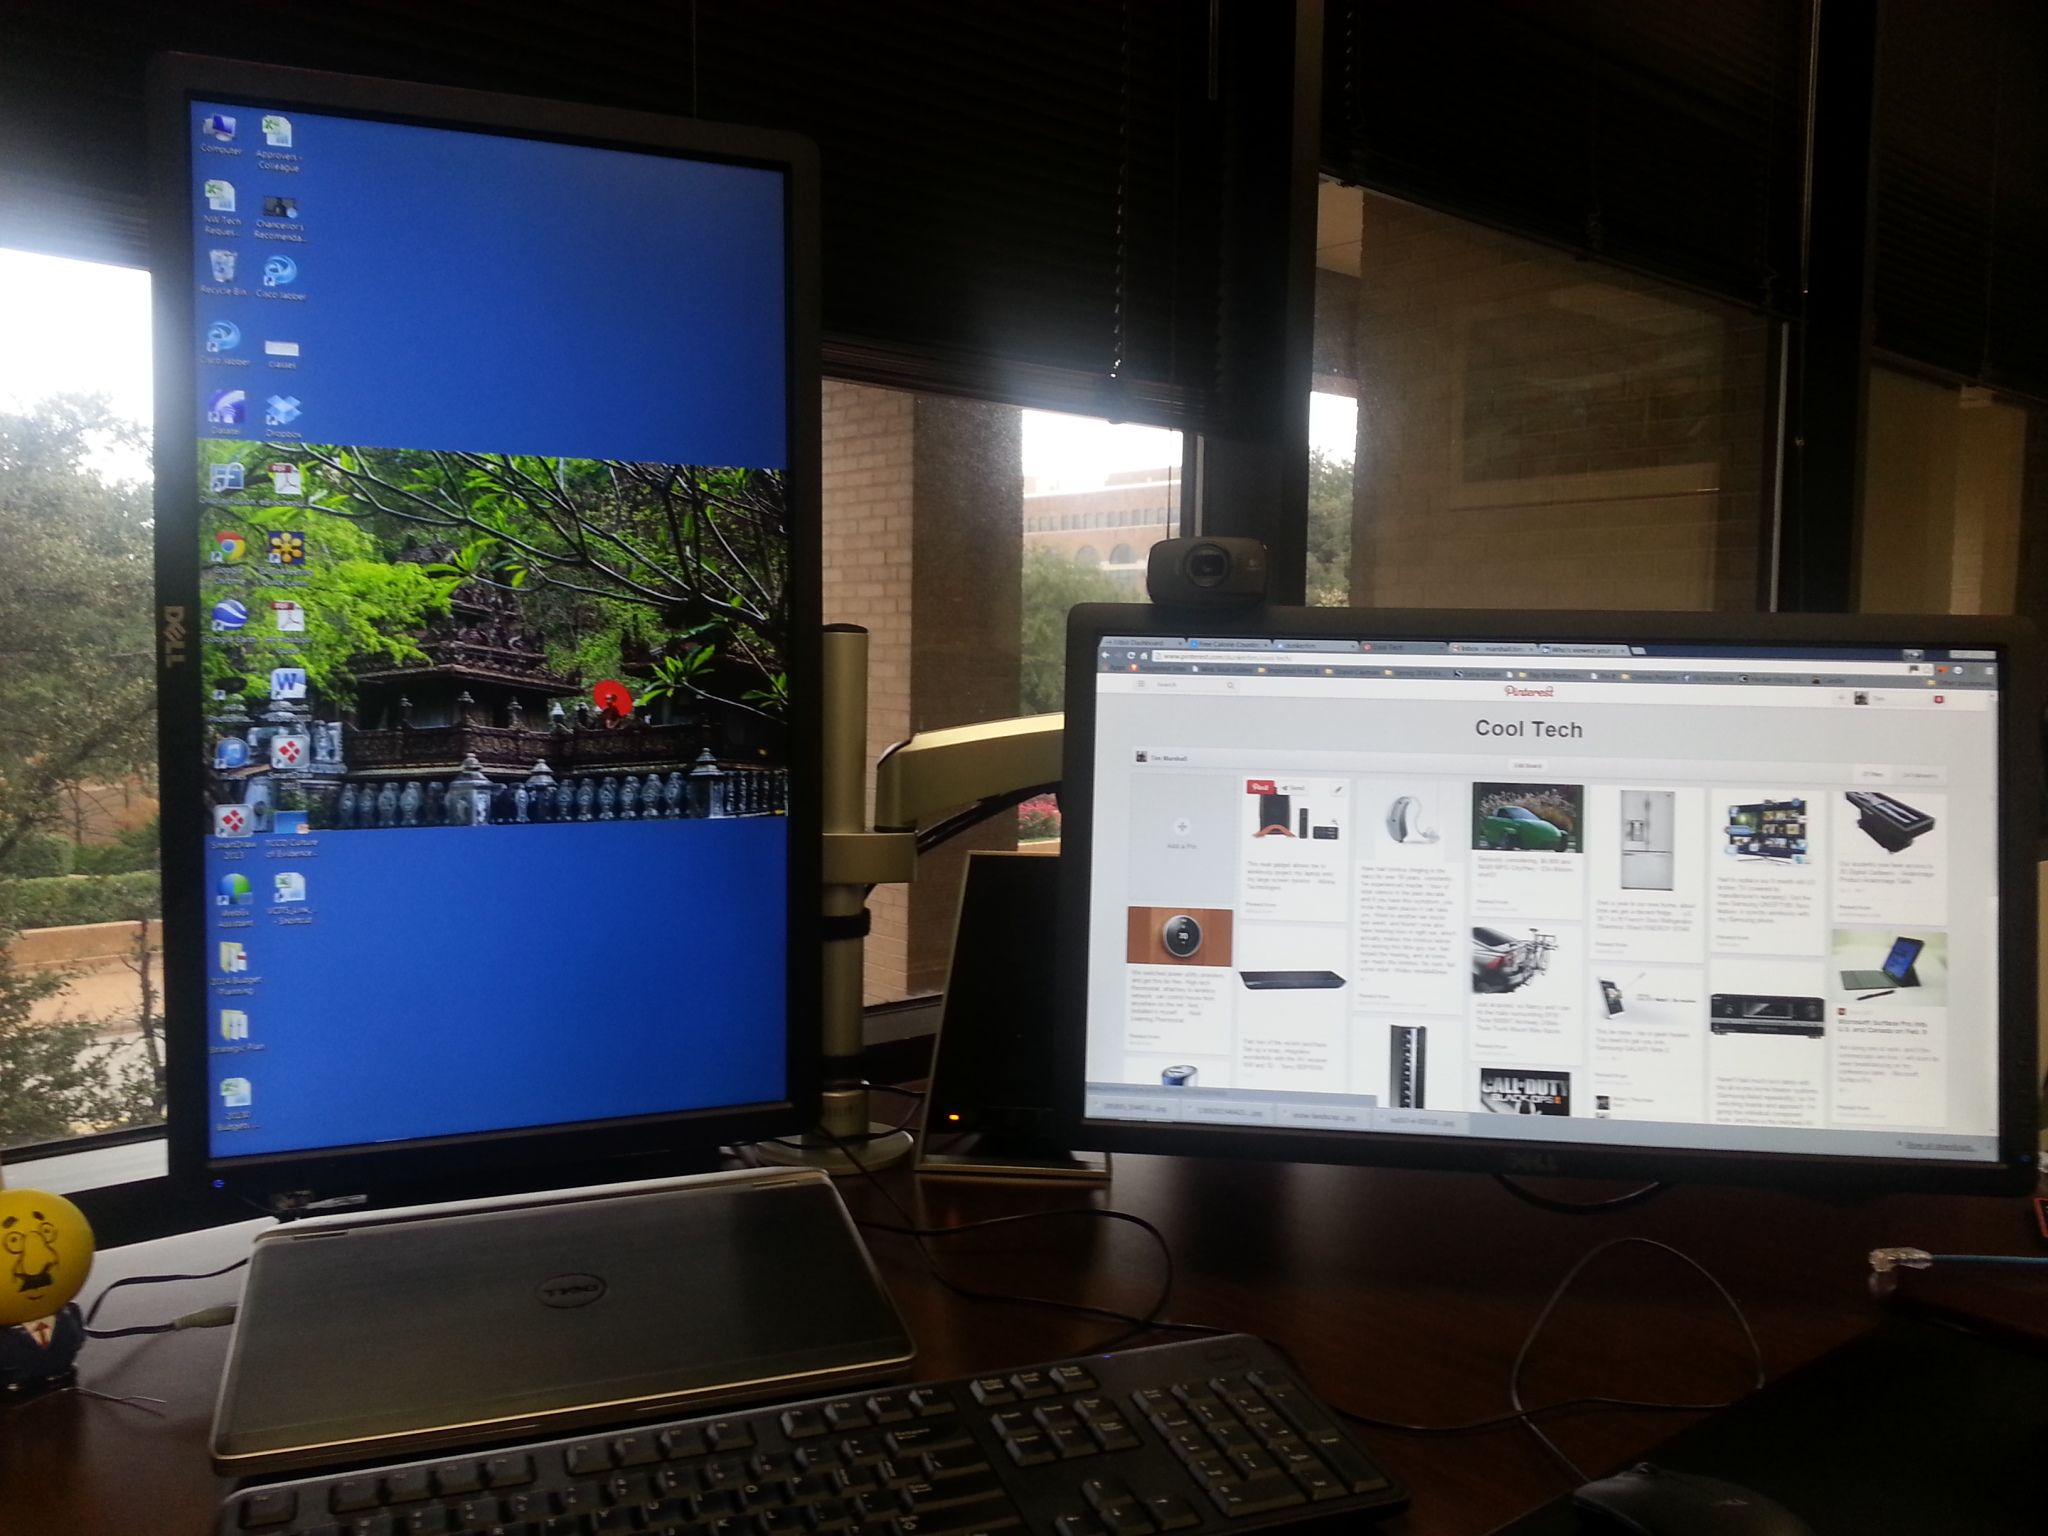 dual monitor setup at work one portrait and one landscape made